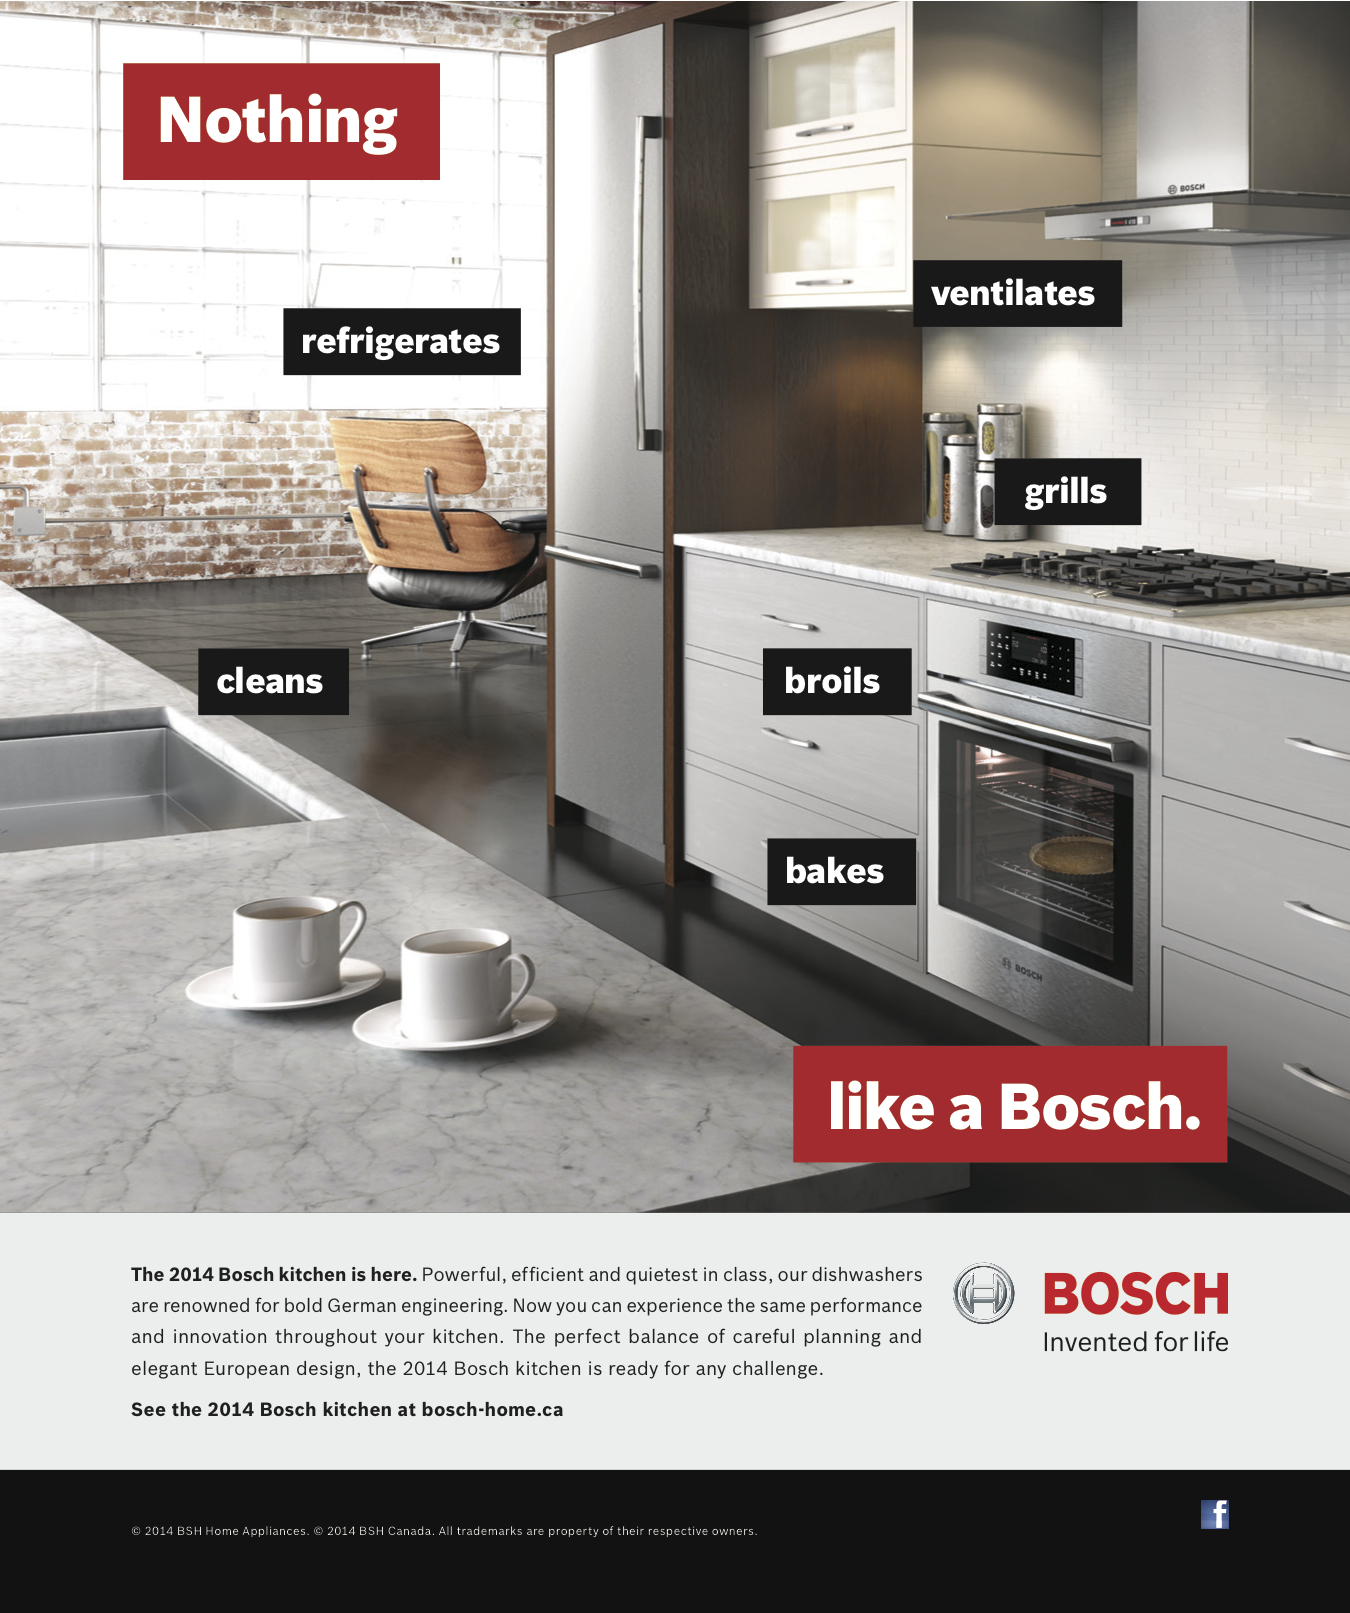 bosch kitchen best deals on appliances wants you to know it s more than just dishwashers marketing we had a great problem everyone loves our but most don t even that make all from fridges wall ovens said steve